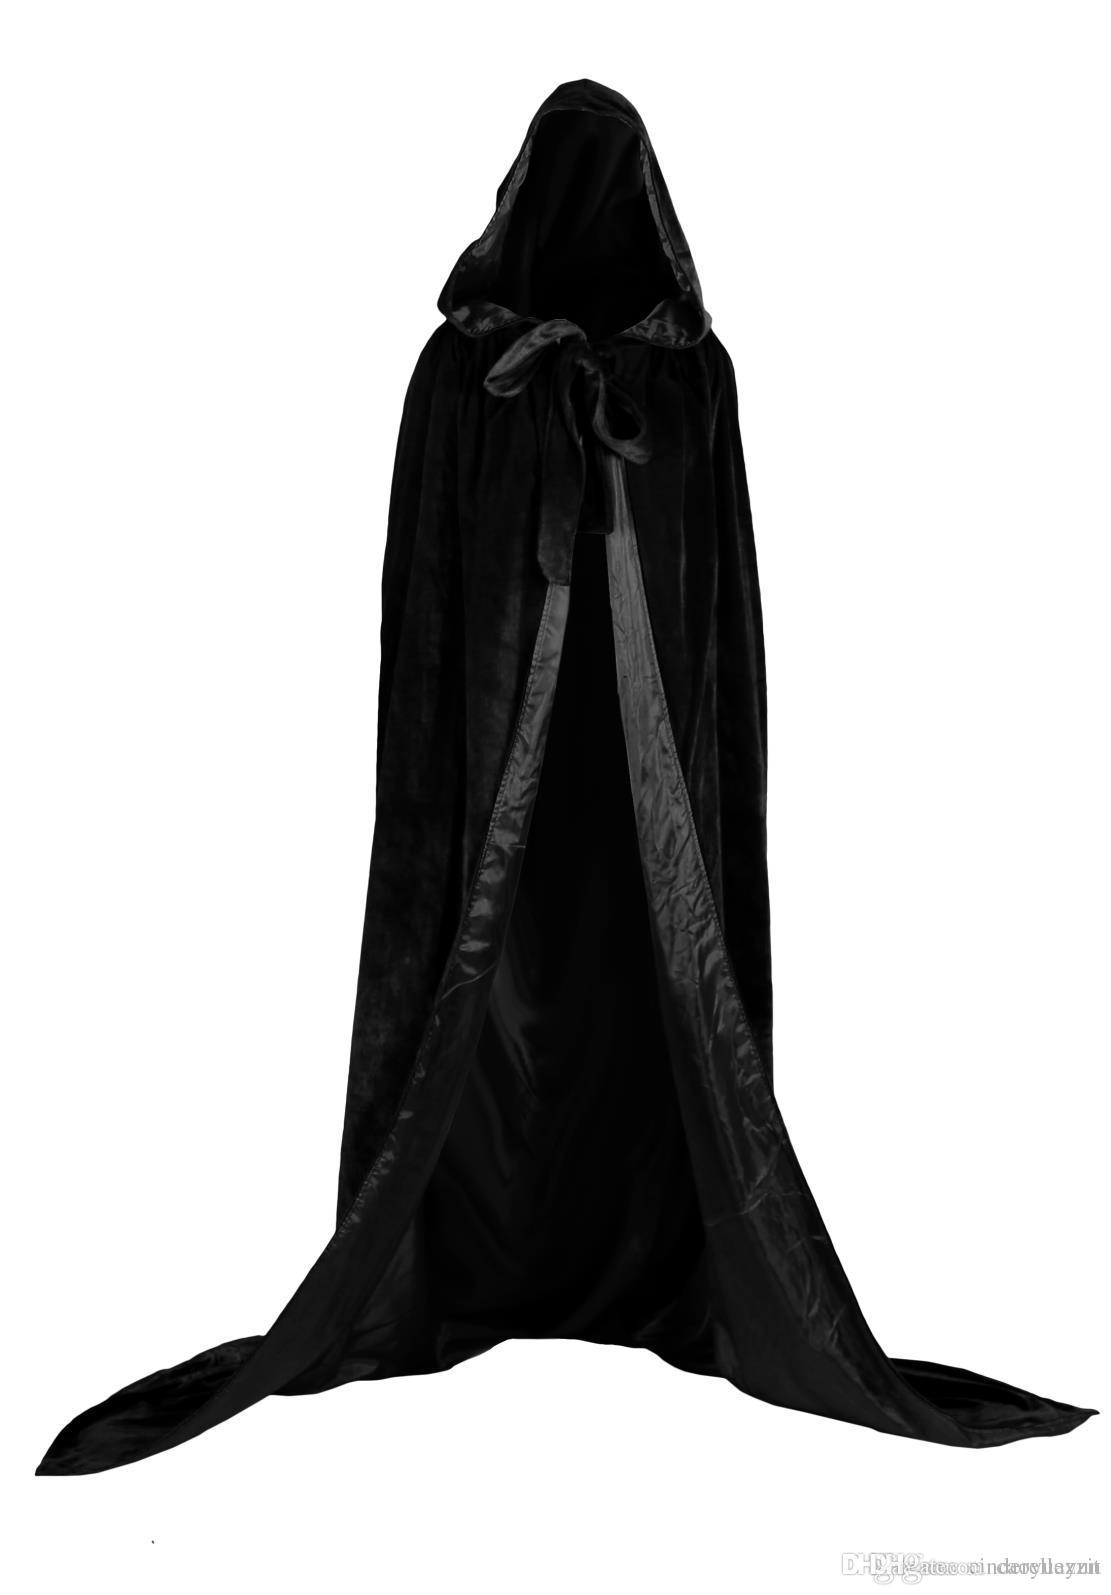 78d53e3f5a 2019 New Black And 10 Colour Lining Hooded Velvet Cloak Gothic Wicca Robe  Medieval Witchcraft Larp Cape Hooded Vampire Cape Halloween Party Cloak  From ...